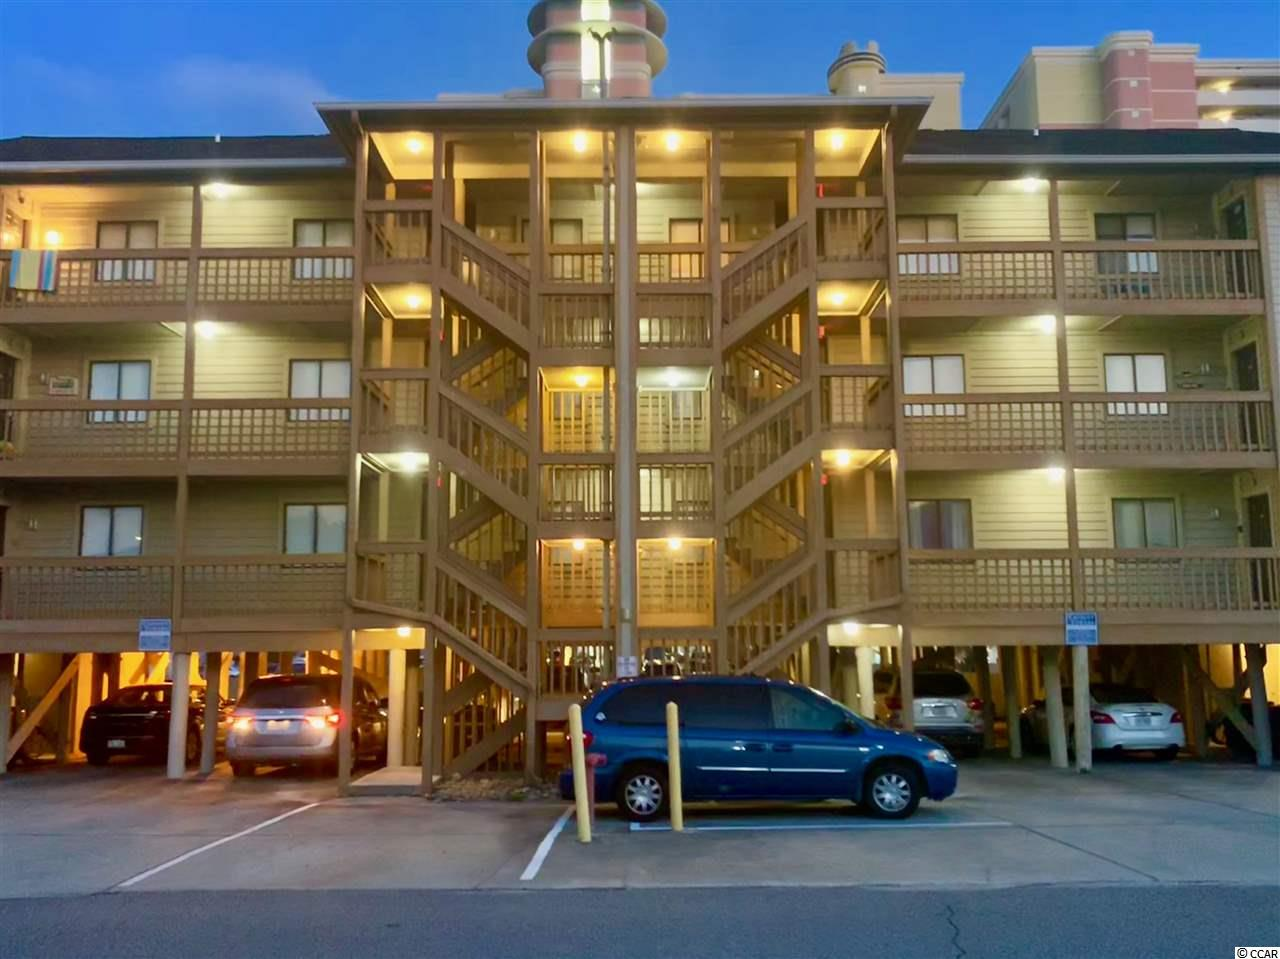 This is a rare opportunity to purchase this spacious 3 bedroom 2 bath condo with Gorgeous ocean views, in family friendly North Myrtle Beach . These Condos rarely come up for sale in this well maintained 12 unit building.  Enjoy all the sights and sounds of the ocean from the large balcony which has  access from the living room and the master bedroom.  There is a nice storage room under the building to store all of your beach gear. Relax while using one of the 2 pools, one is in front of the building and the other is located across the street, on the beach, at Crescent Towers I. This unit is being sold completely furnished, so its turnkey and ready for your next beach vacation!  Great rental income potential!